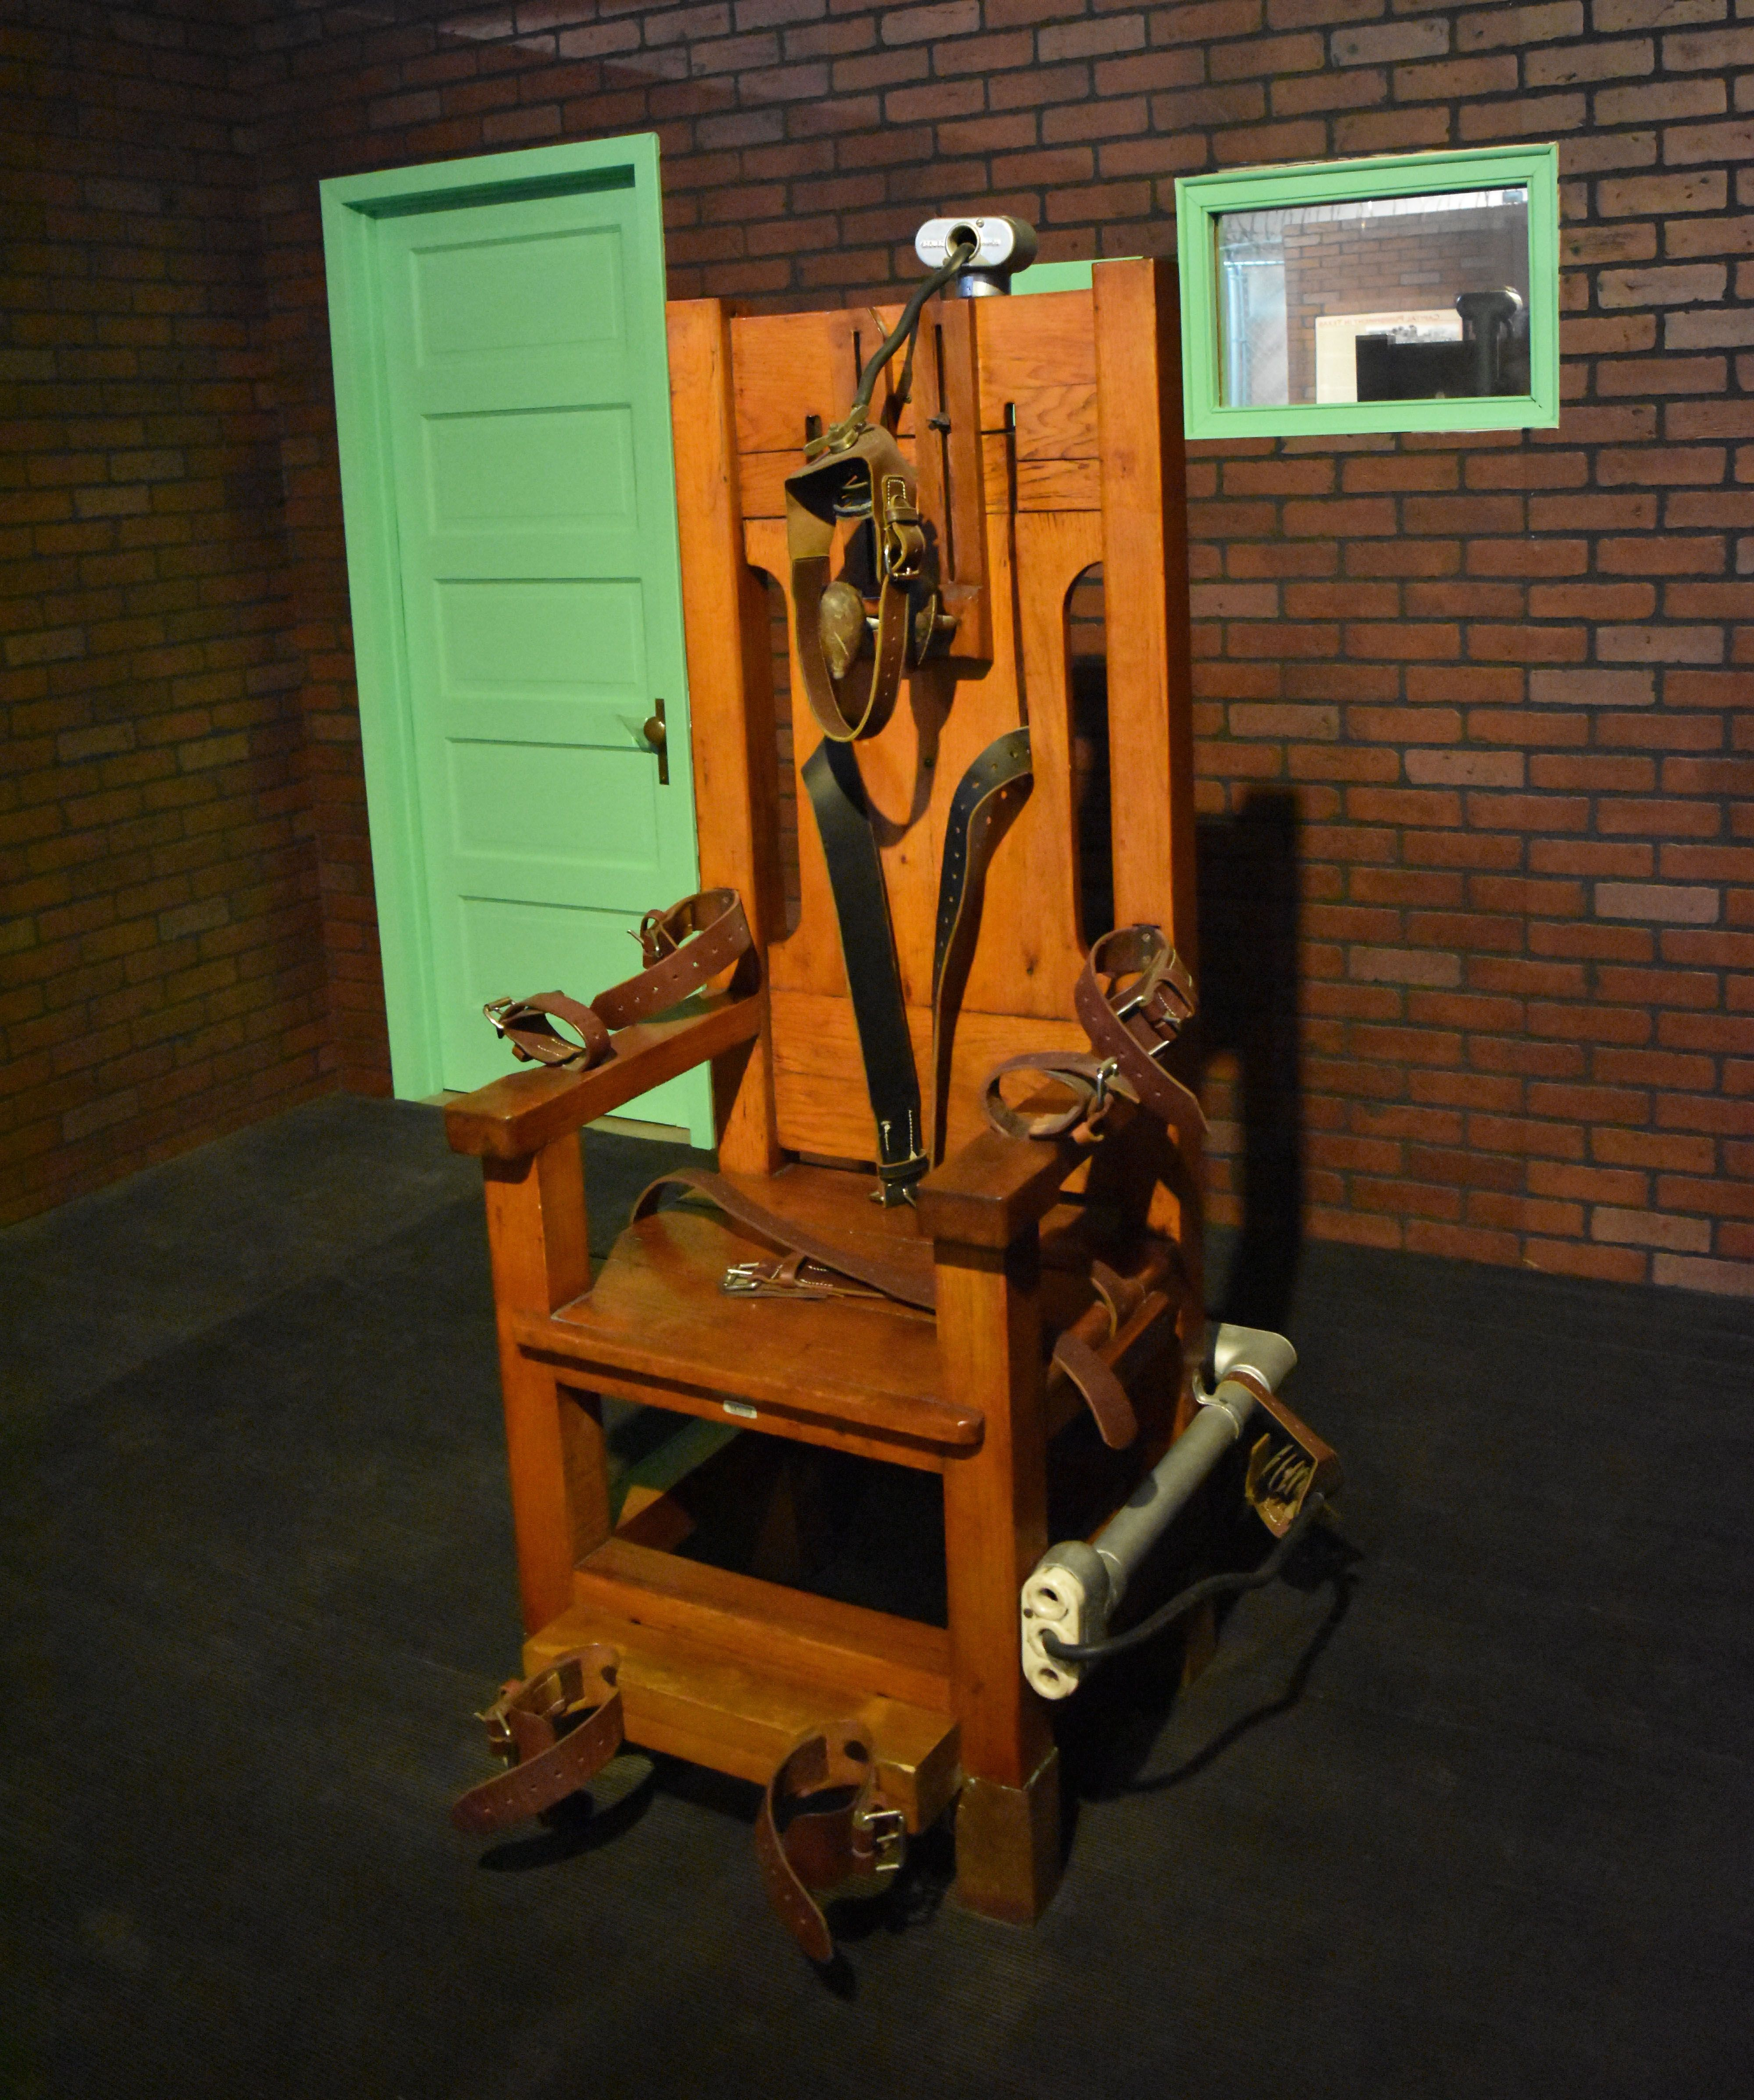 famous electric chair electrocutions pictures to pin on Women Executed Electric Chair deviantART Electric Chair Helmet deviantART